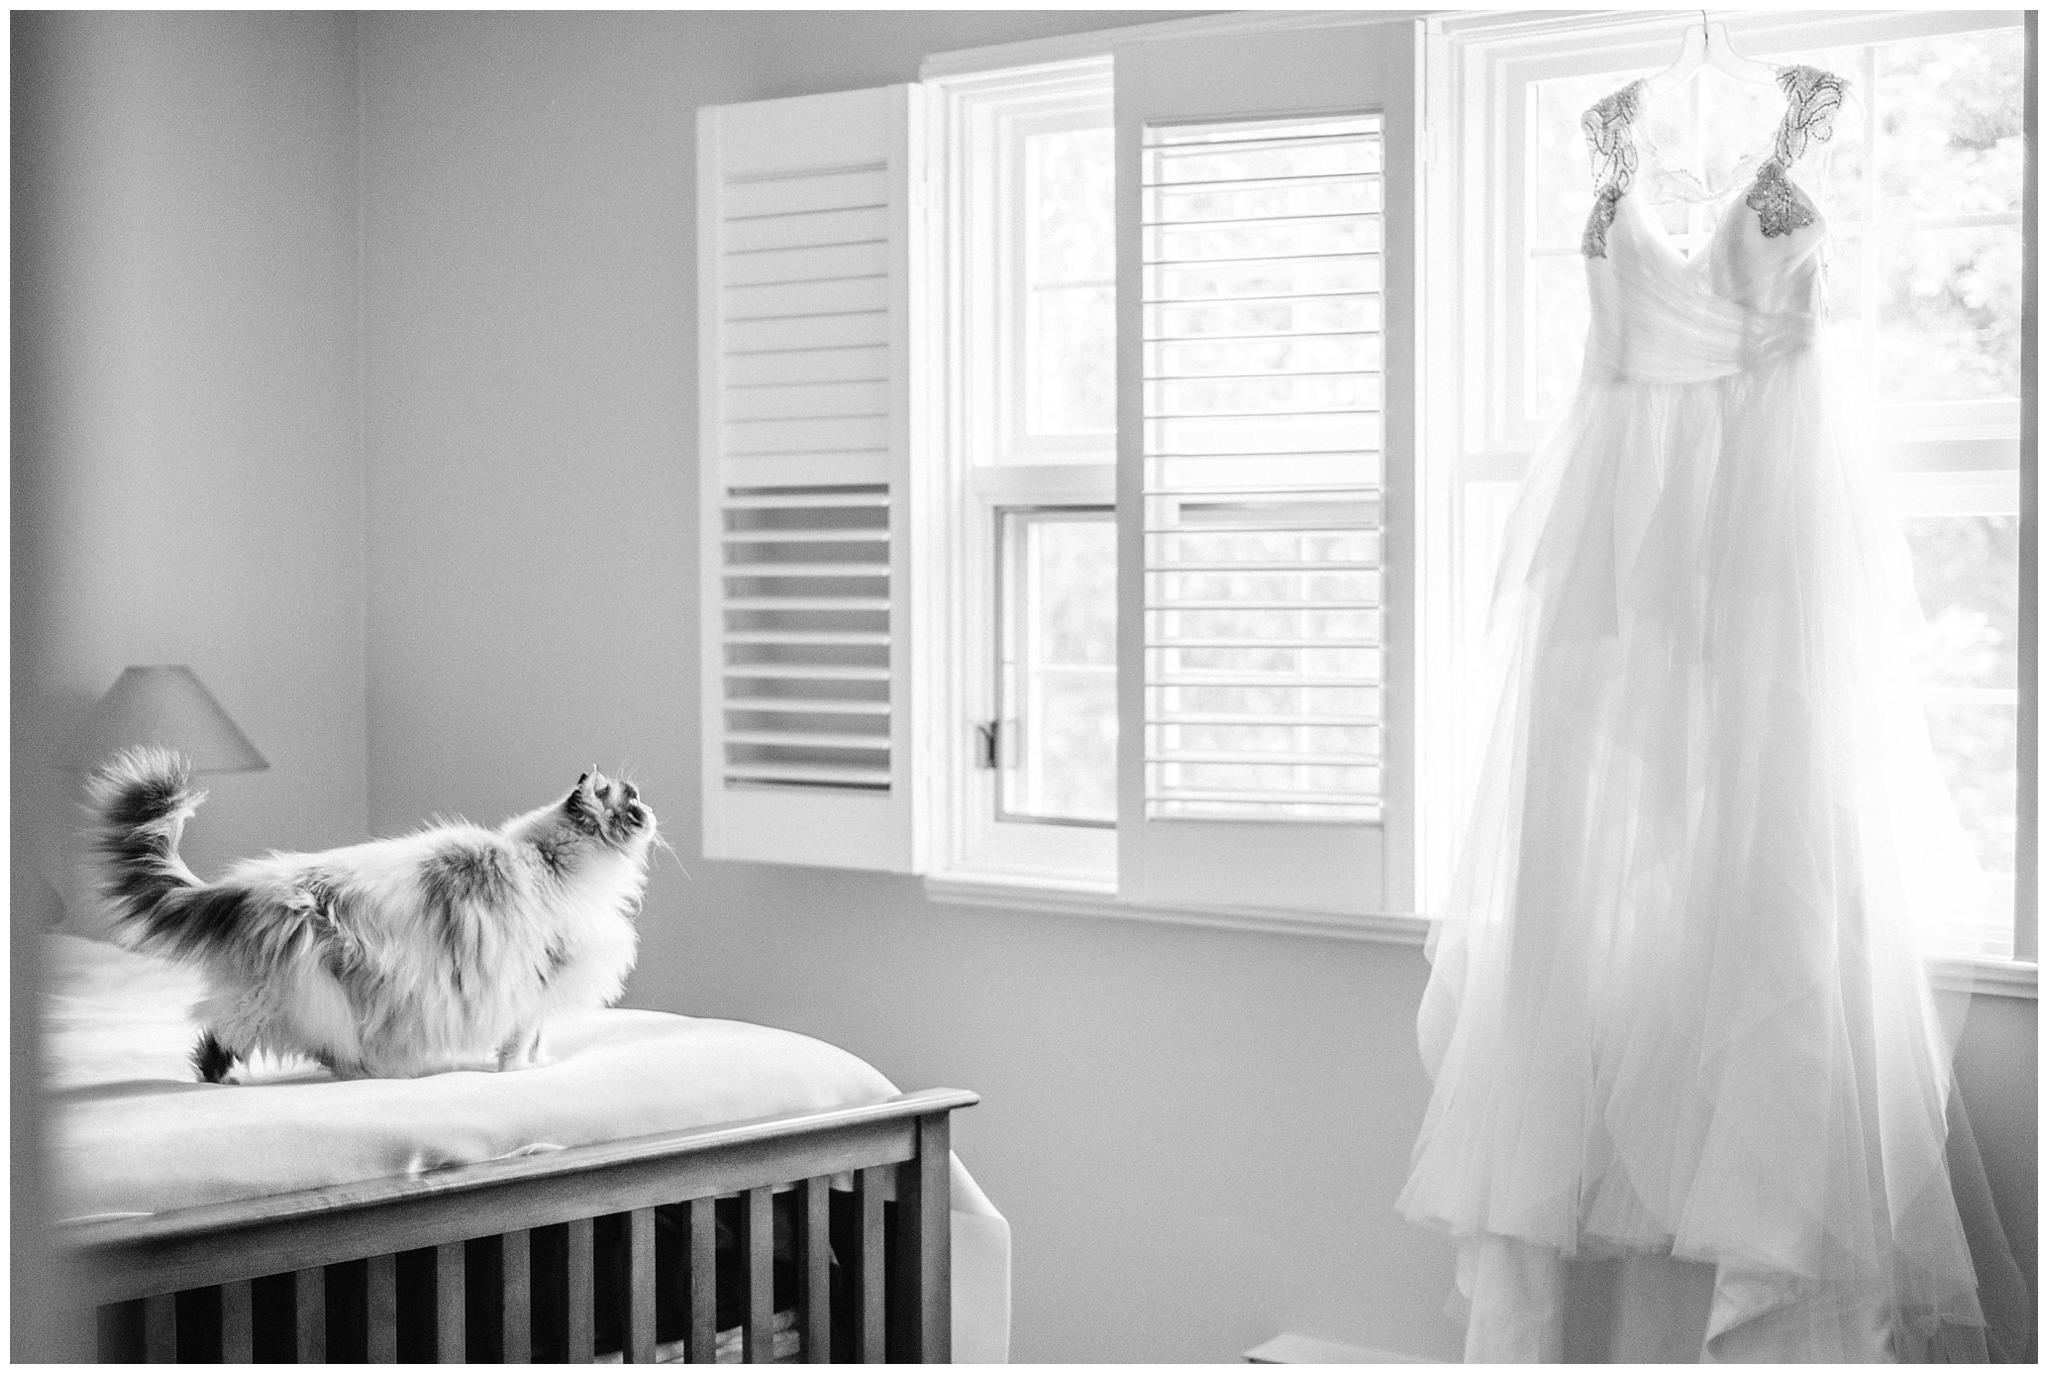 ColouCurious cat looking at gorgeous Hayley Paige gown by Jenn Kavanagh Photography